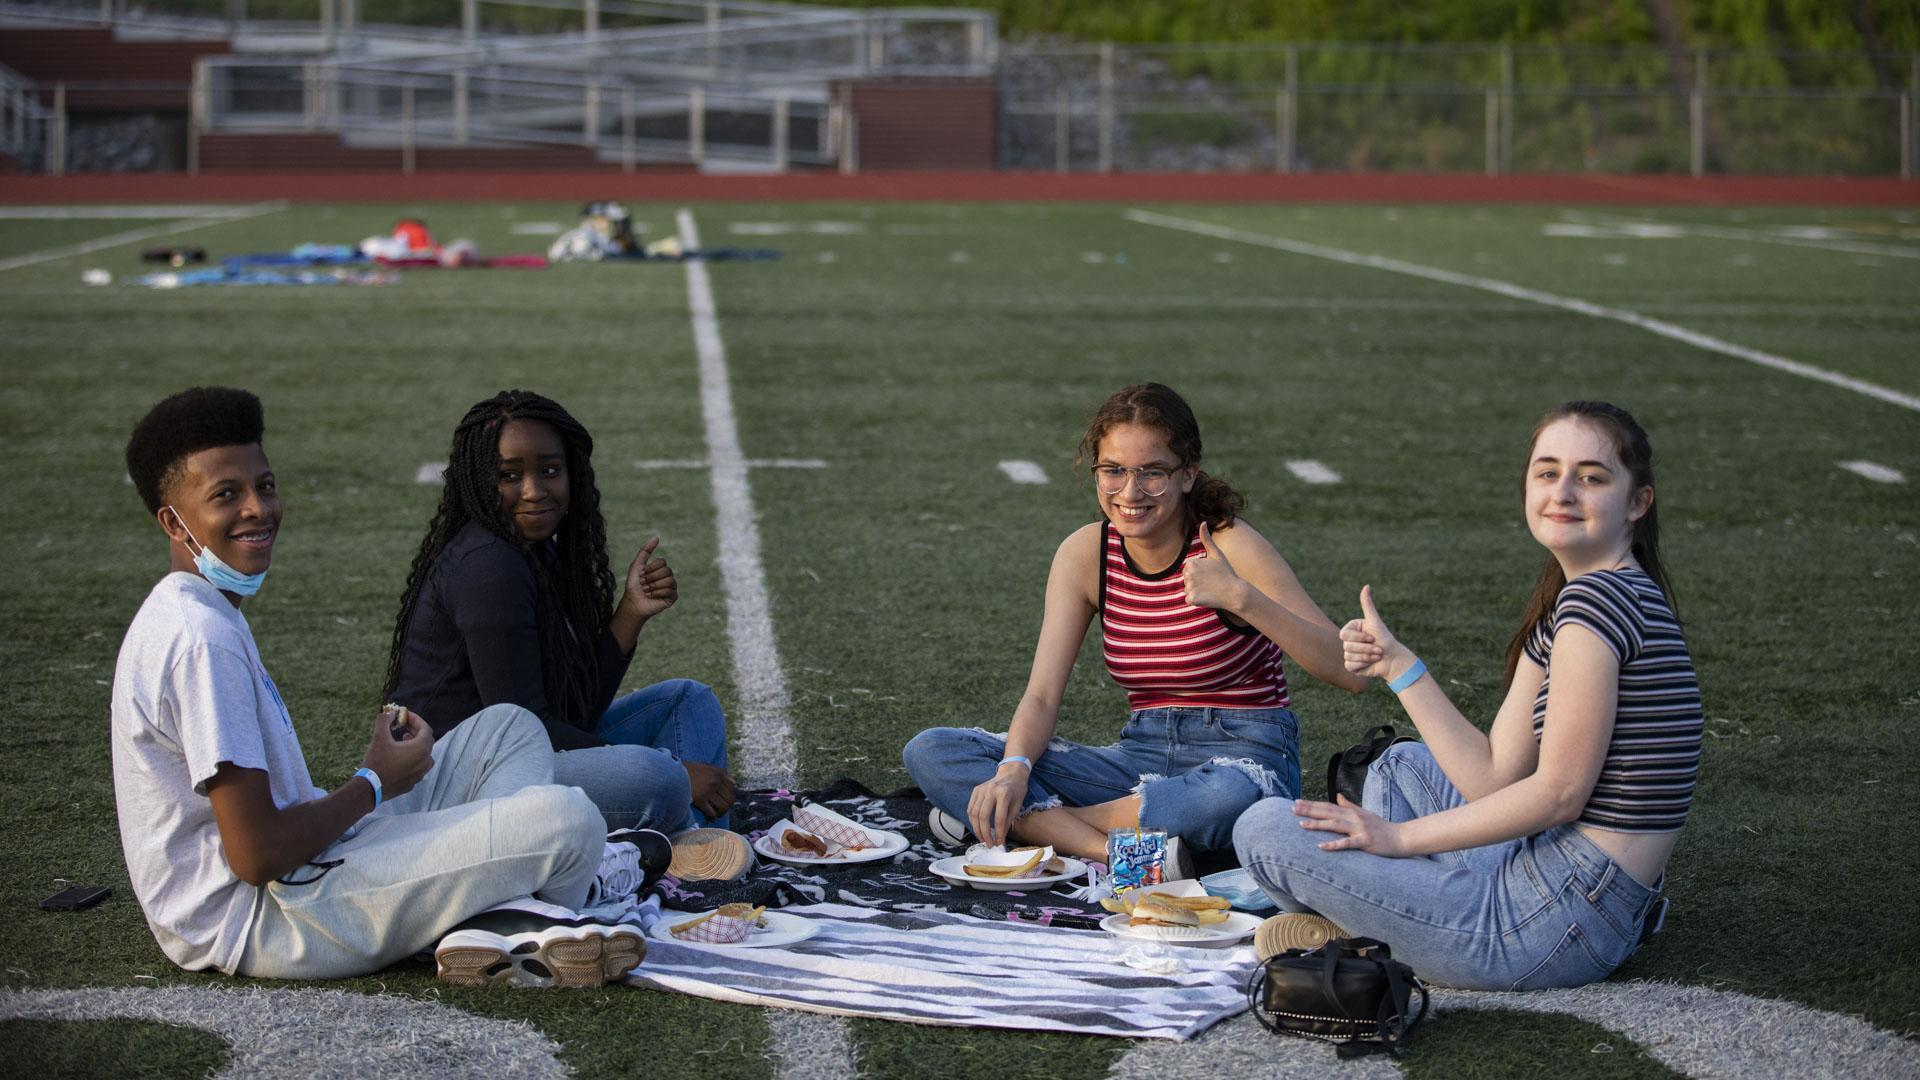 Students picnicking on football field